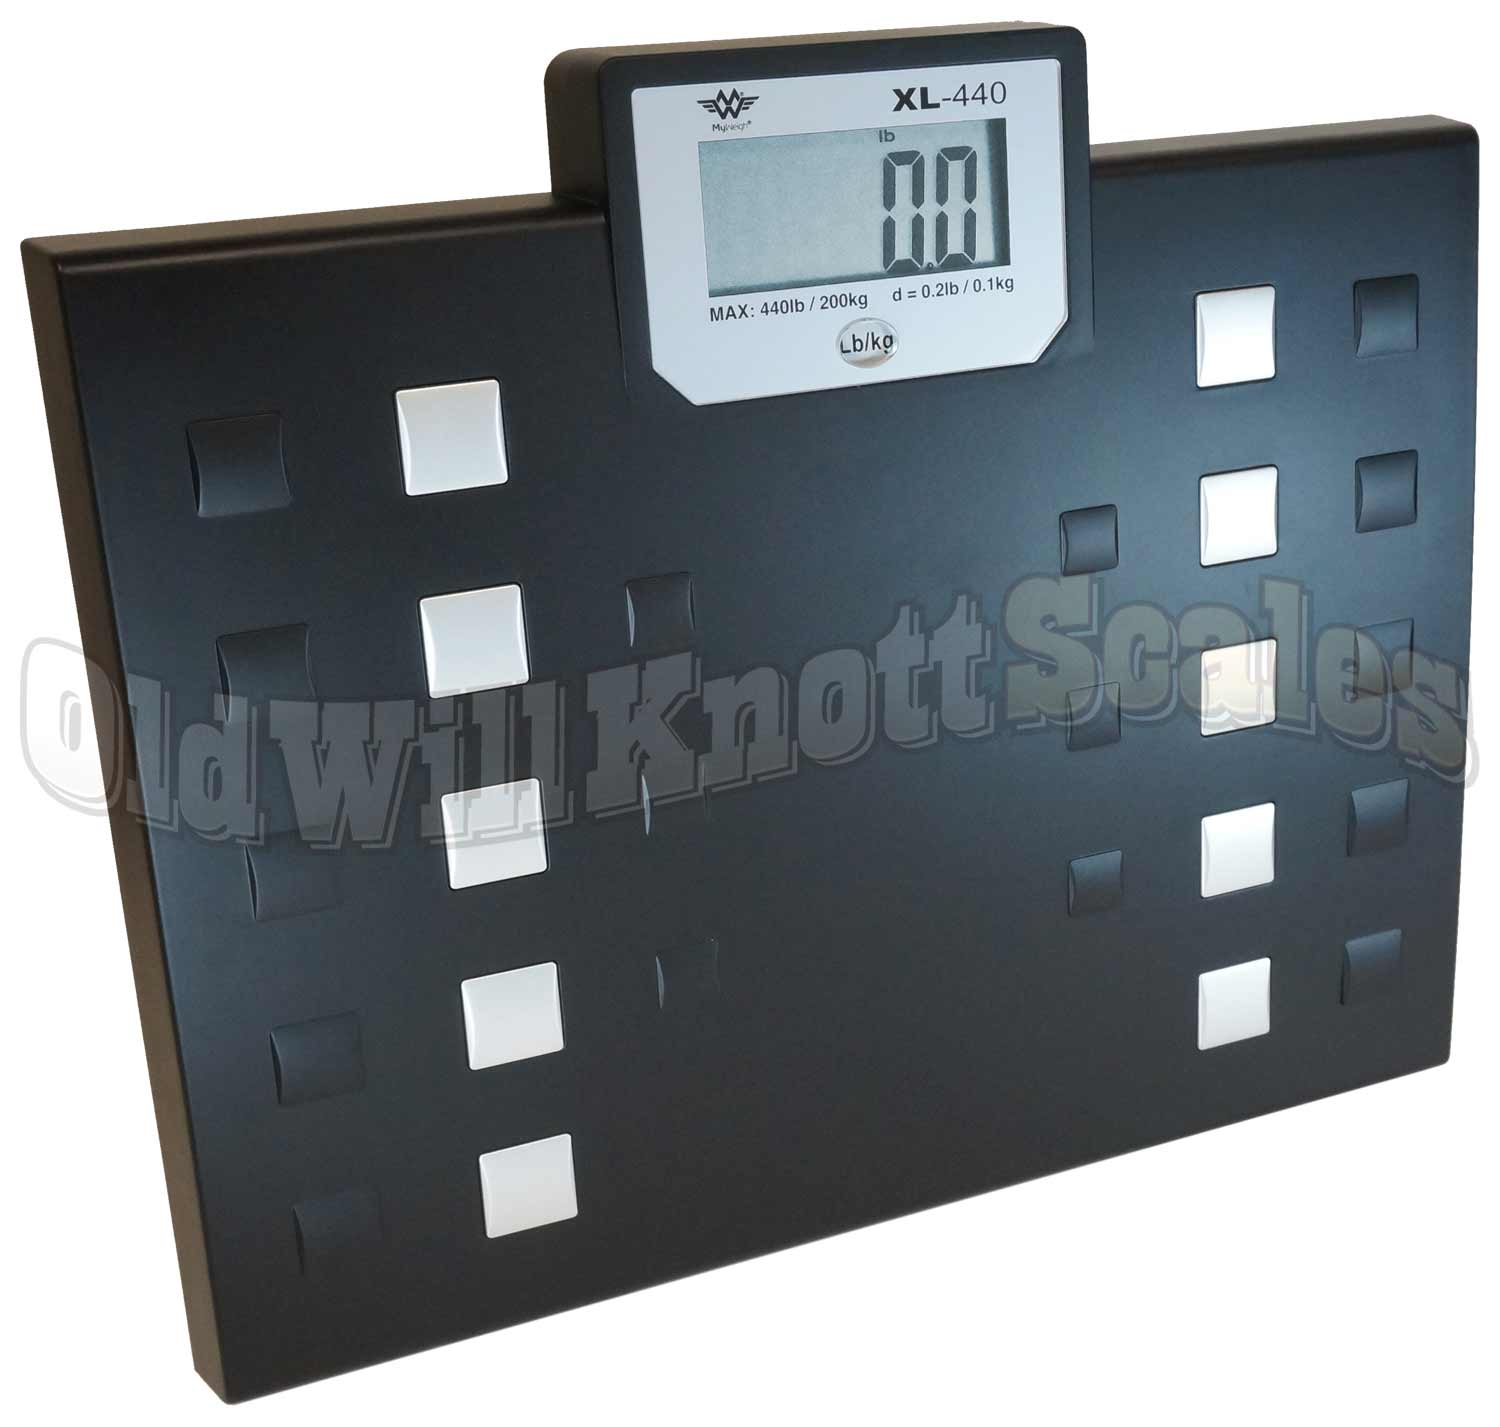 My Weigh XL440